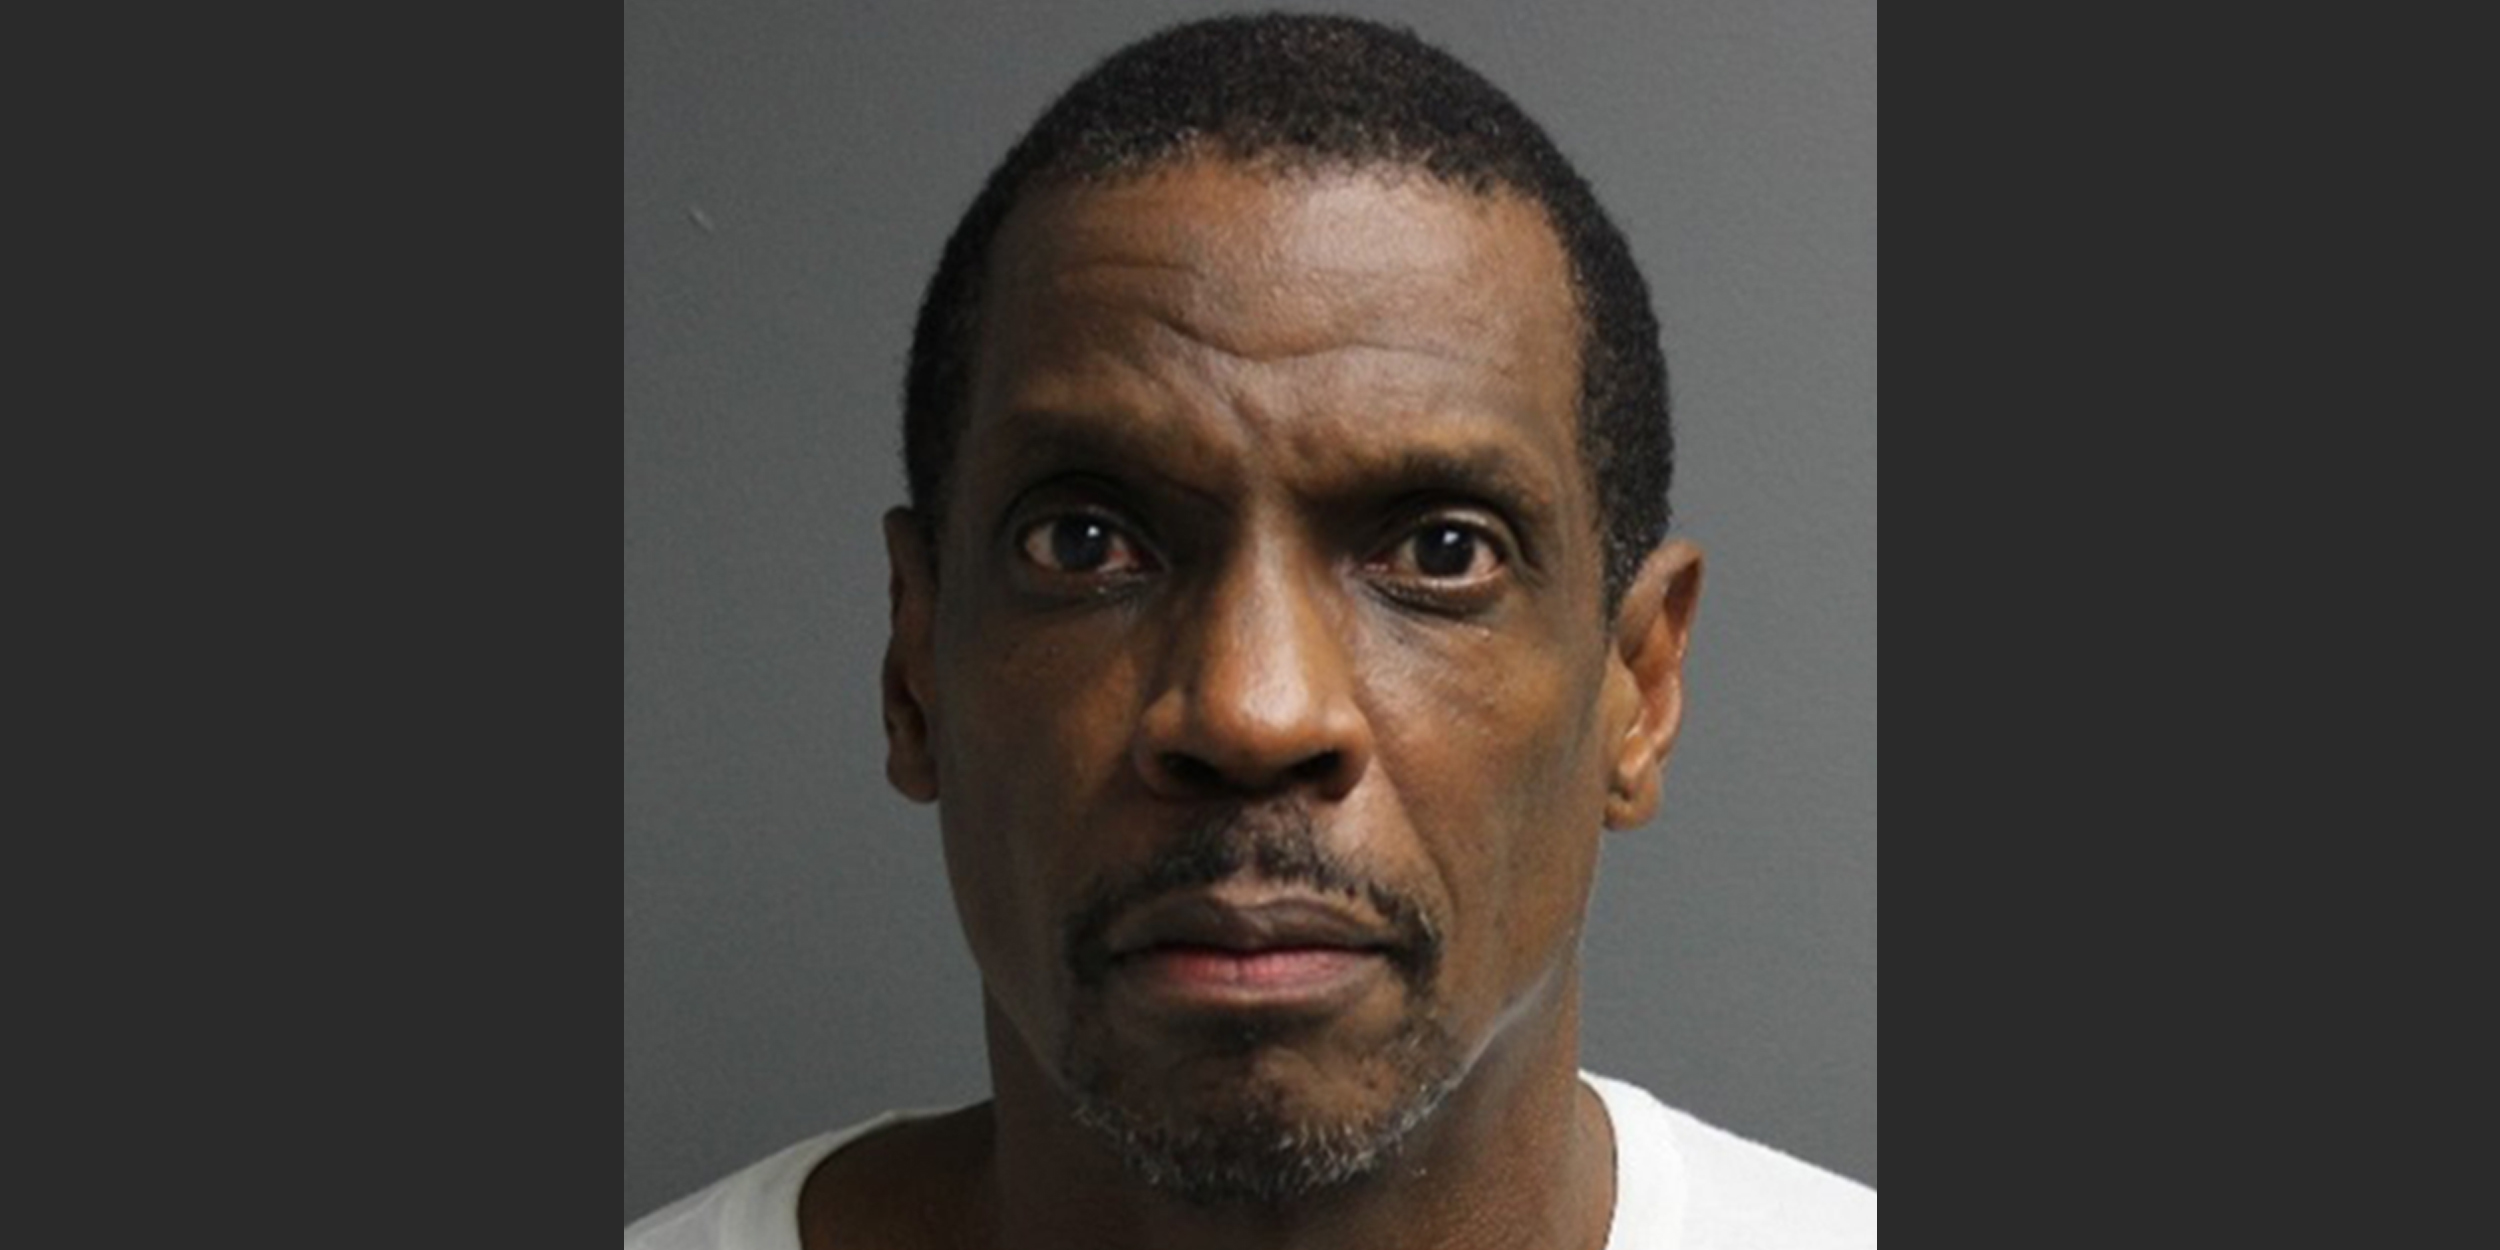 Mets great Dwight Gooden arrested for second time in 6 weeks